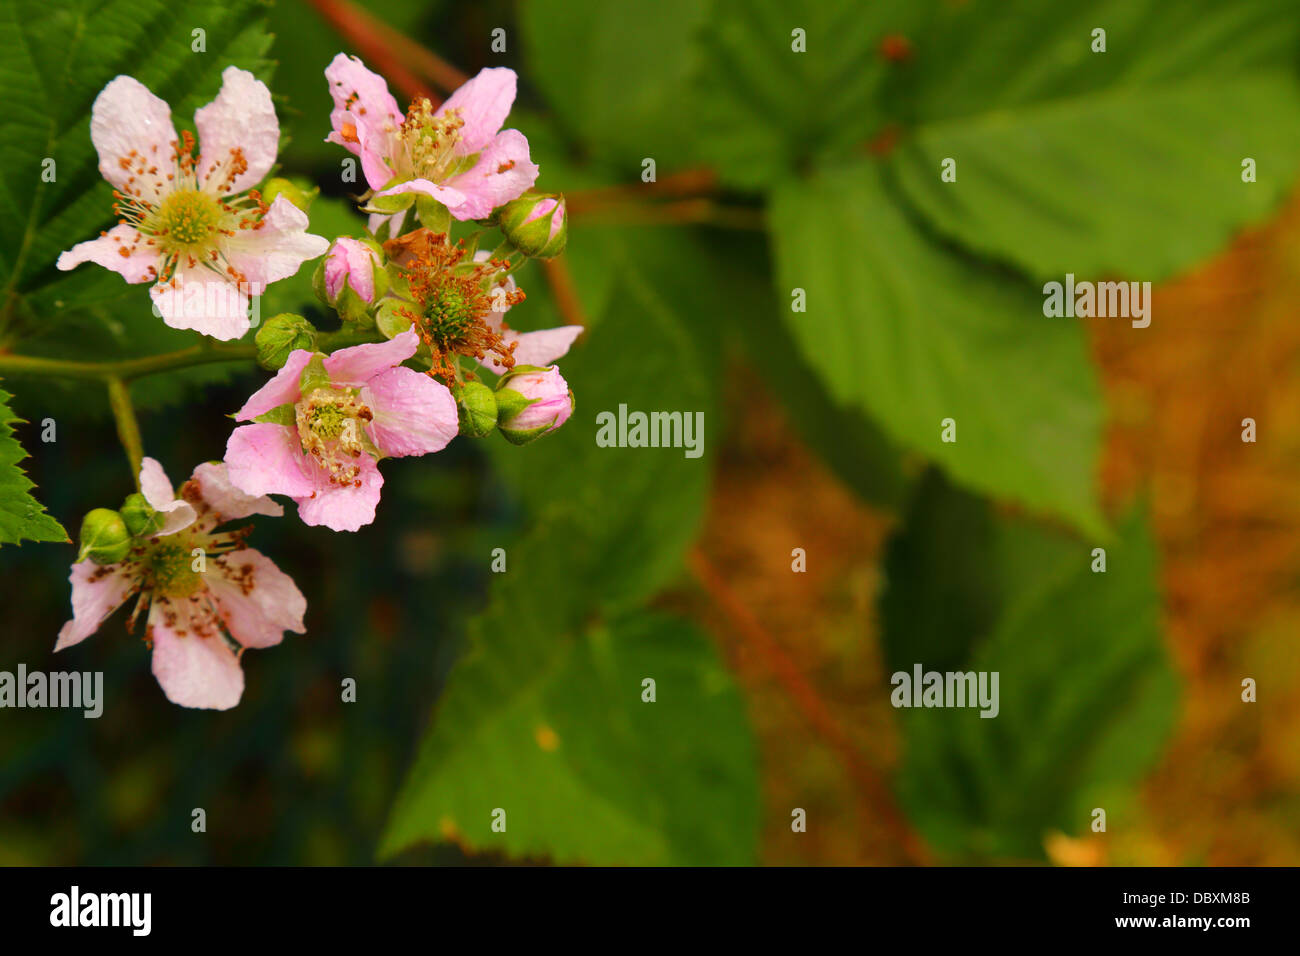 Wet Blackberry Flowers after Rain - Rubus fruticosus - No Sales on Alamy  or anywhere else - Stock Image